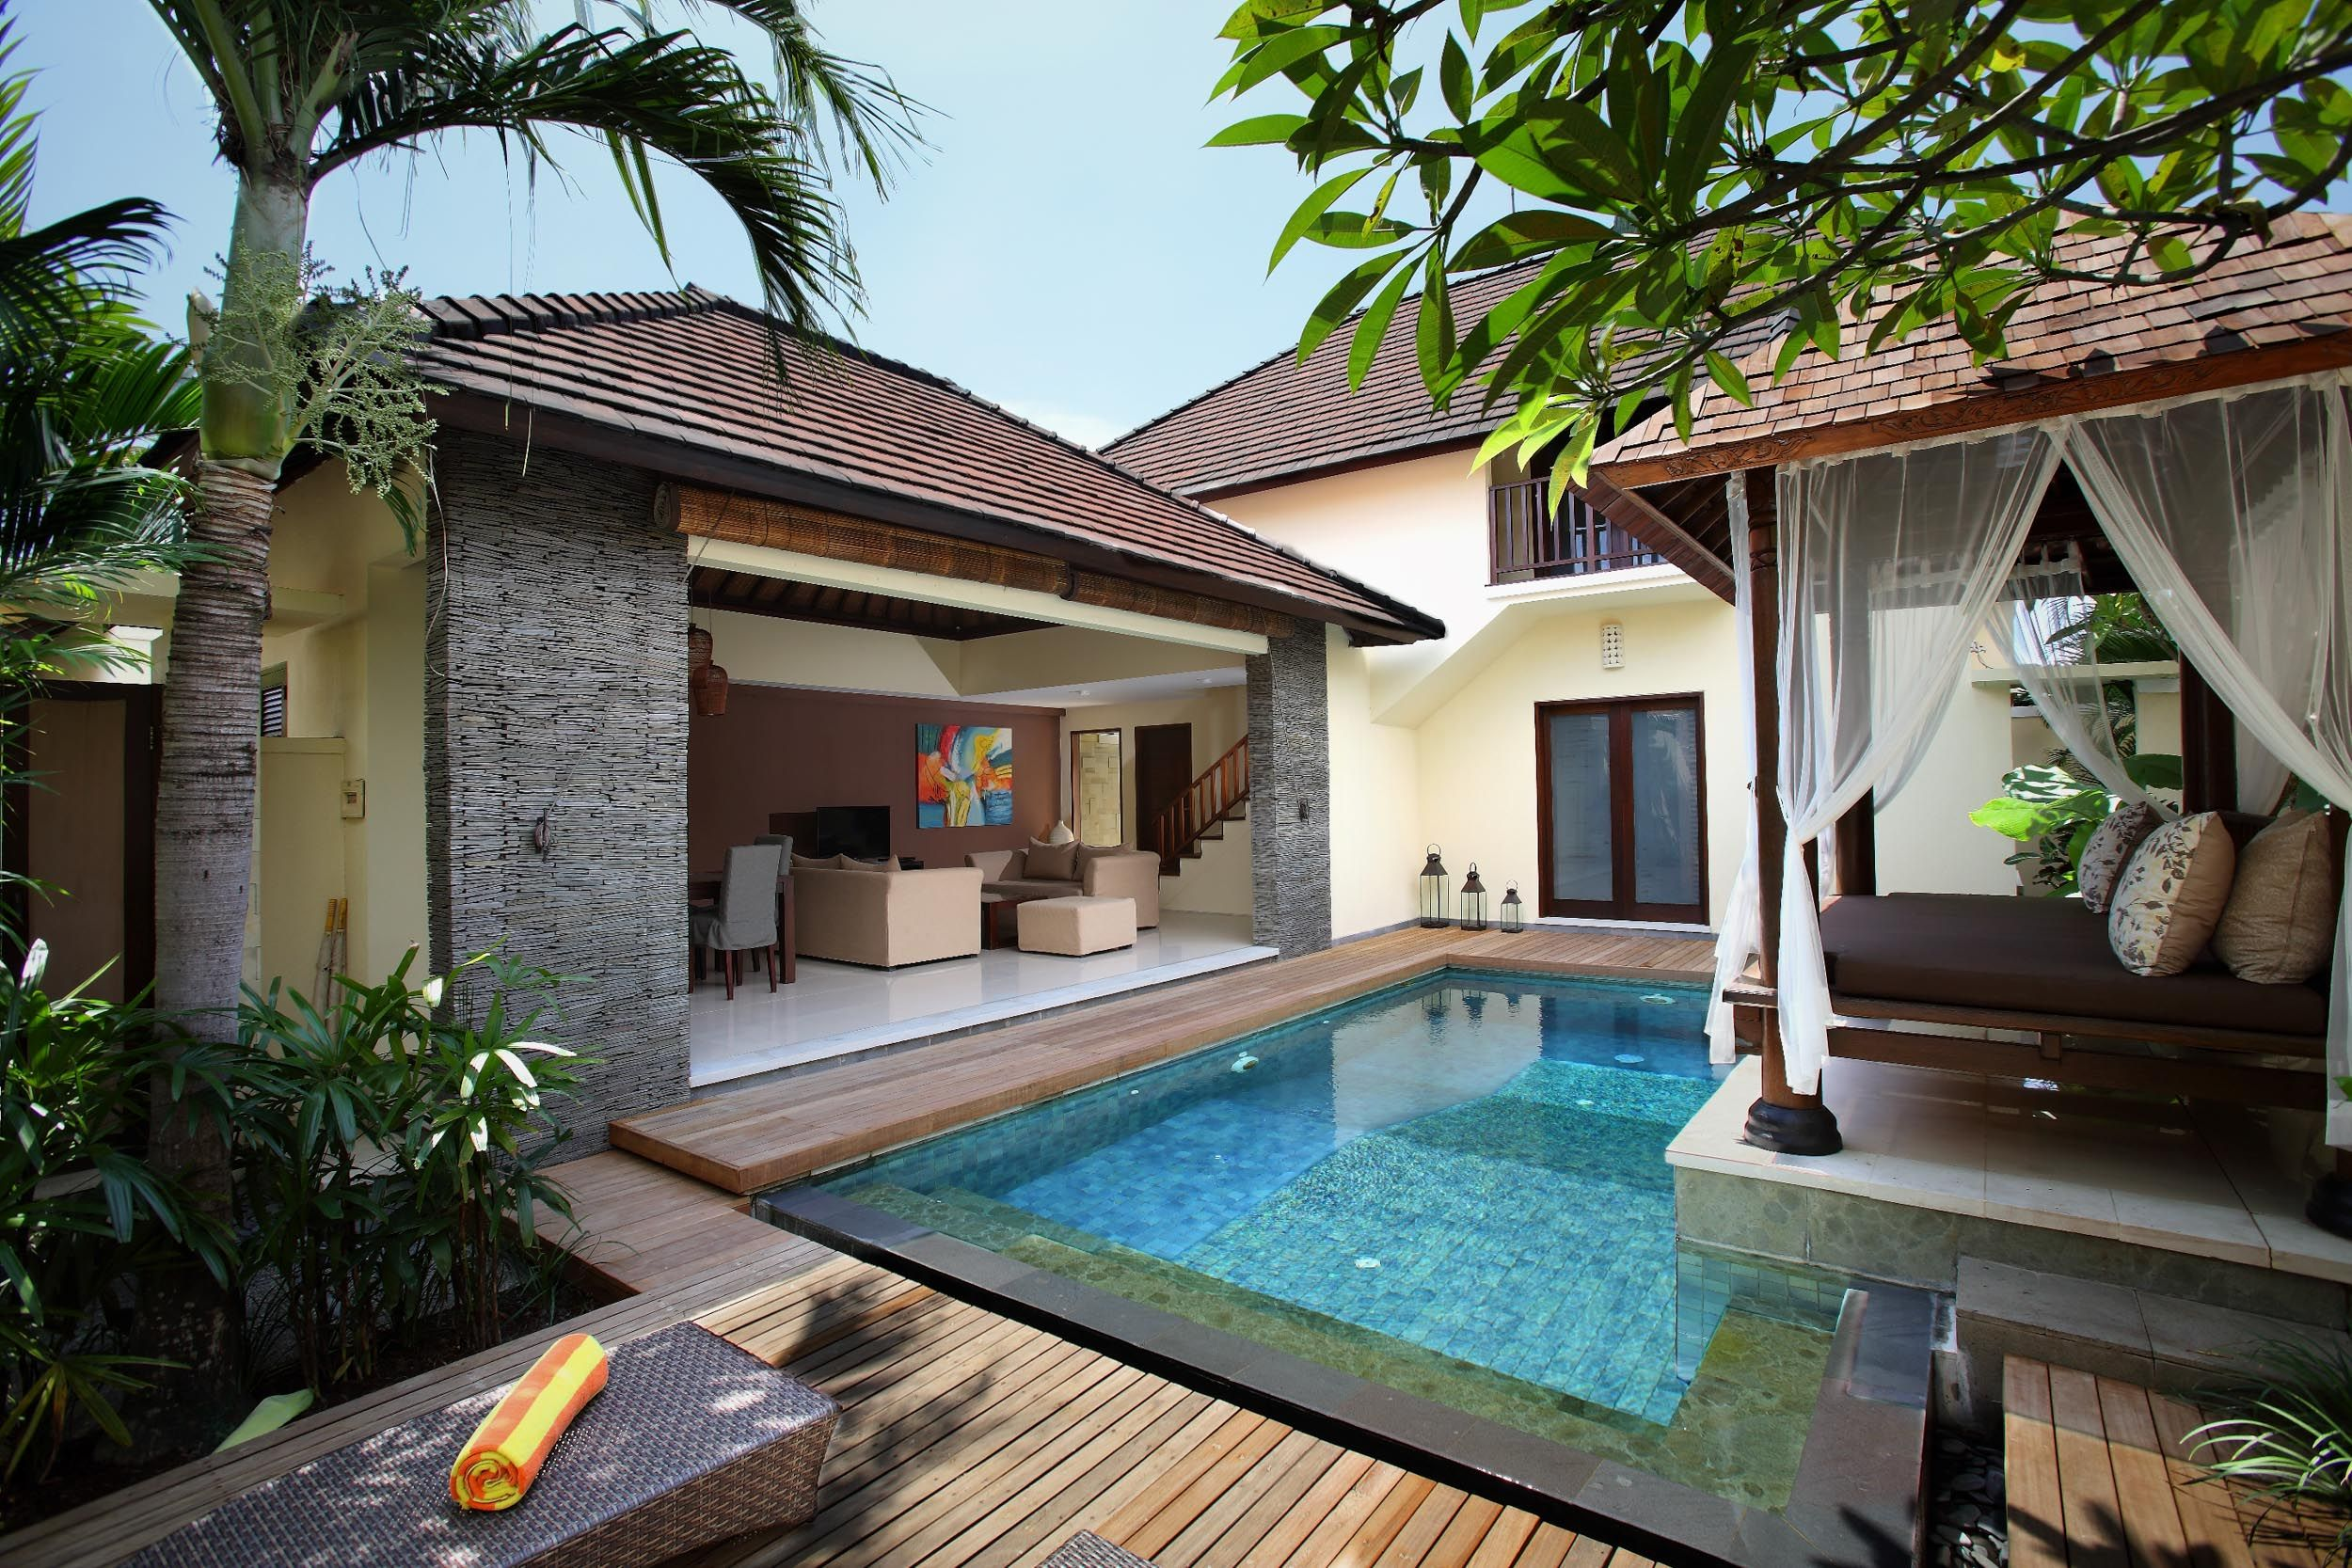 404 Not Found Luxury Pool House Pool House Designs Bali House